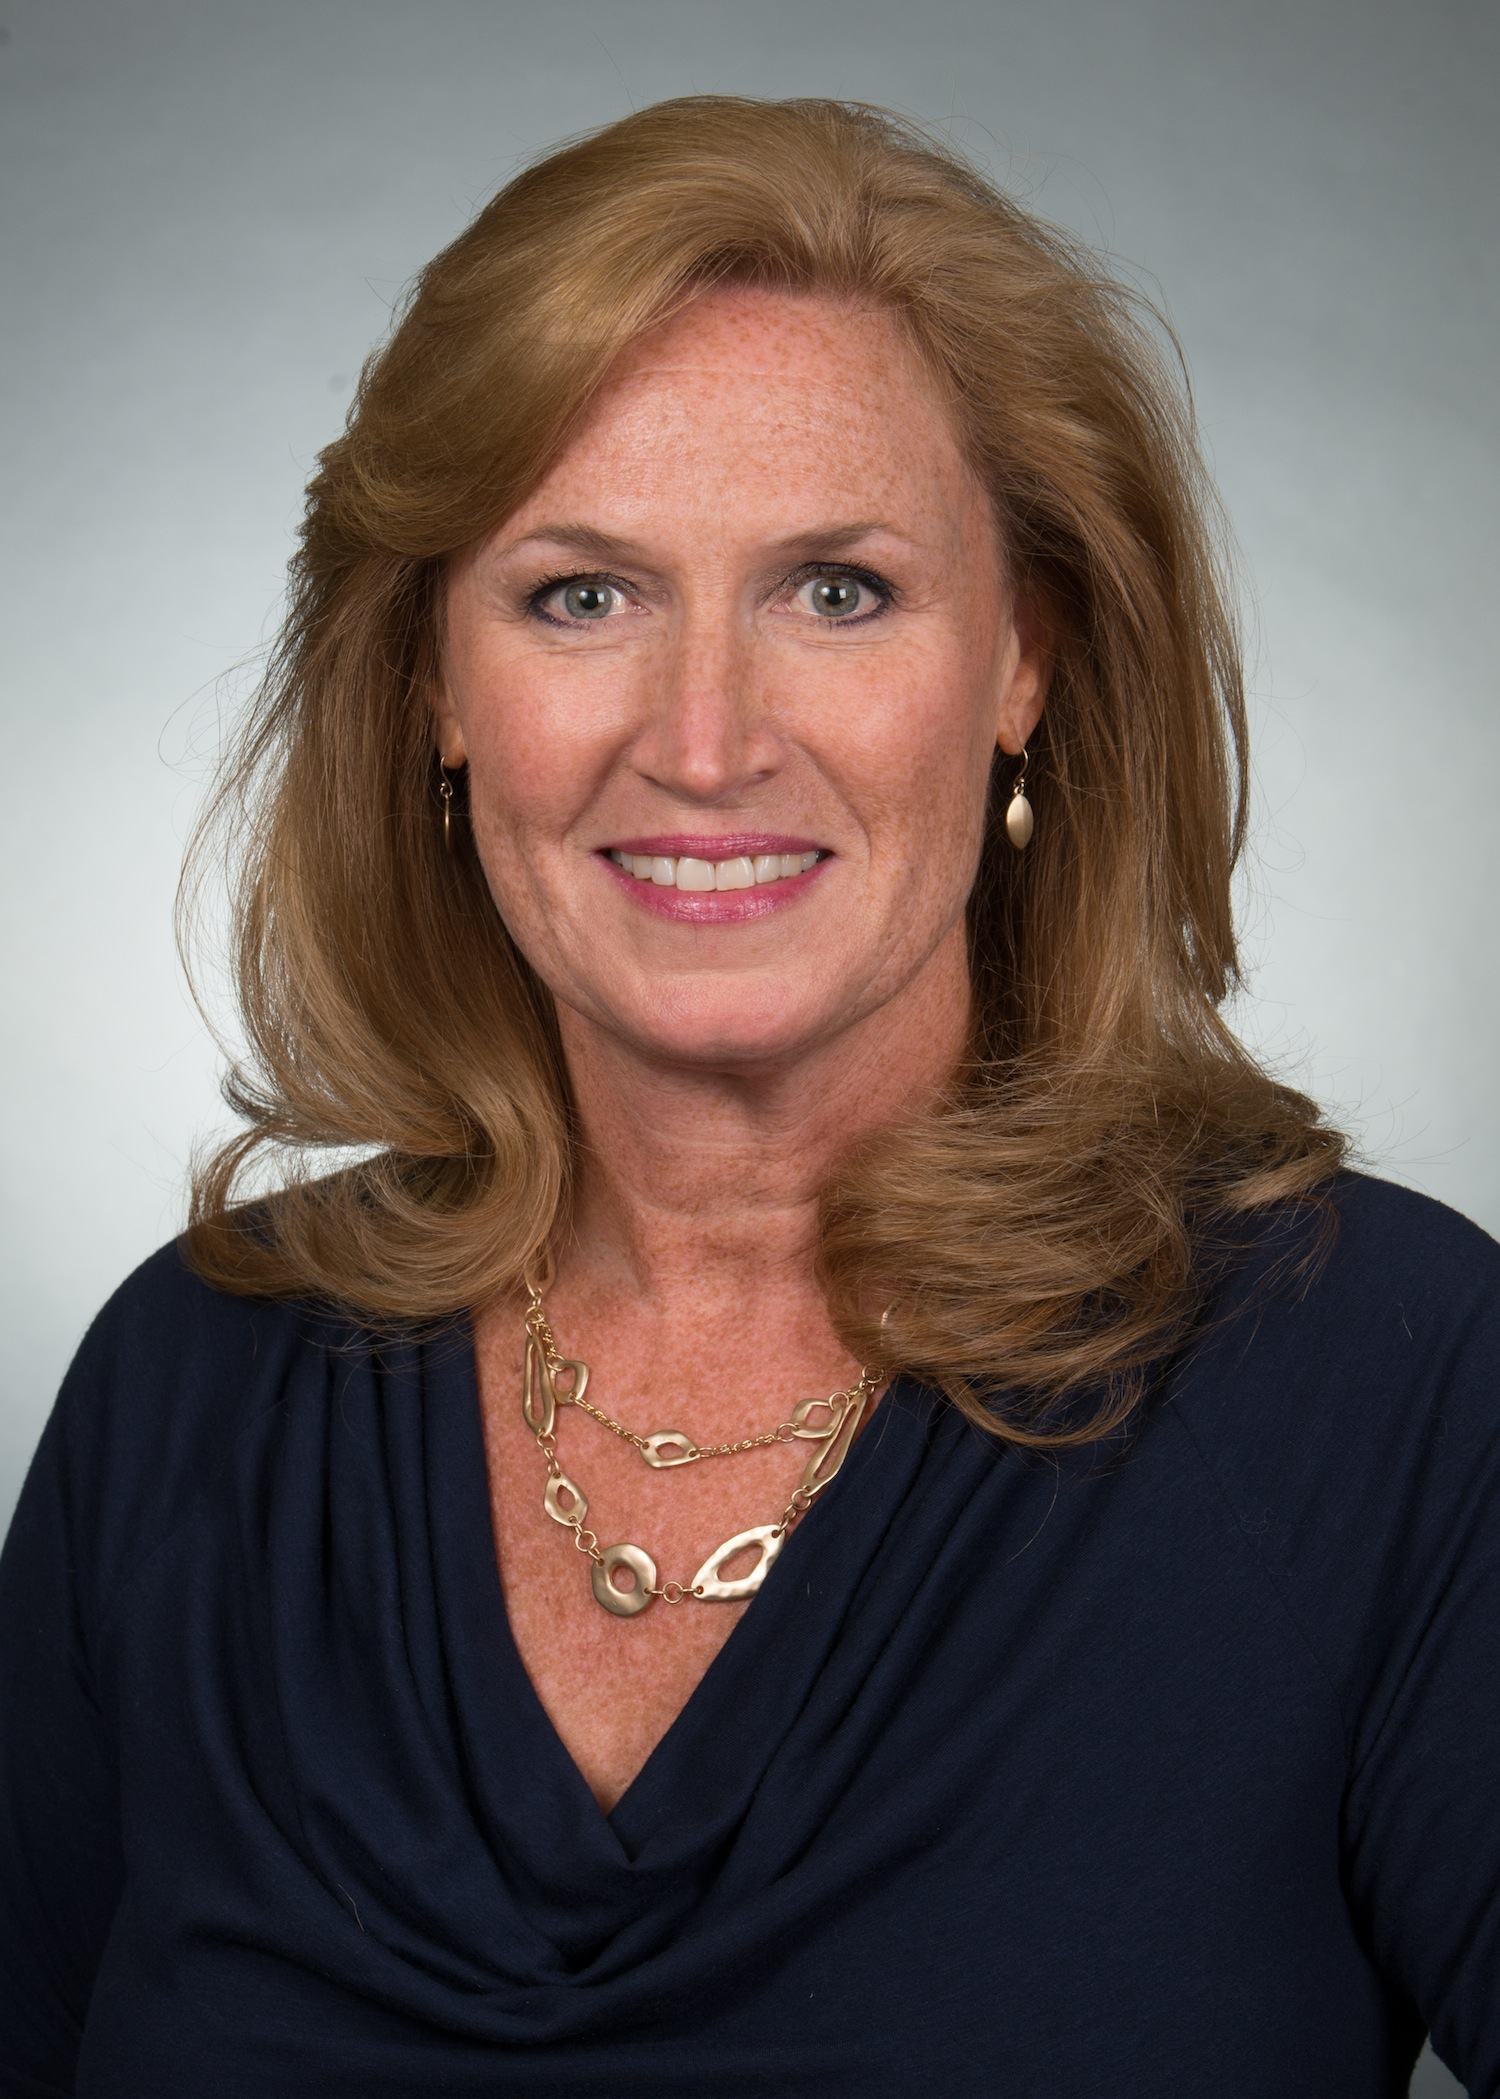 A picture of Janet Keene Leasing & Sales Agent of Bender Commercial Real Estate